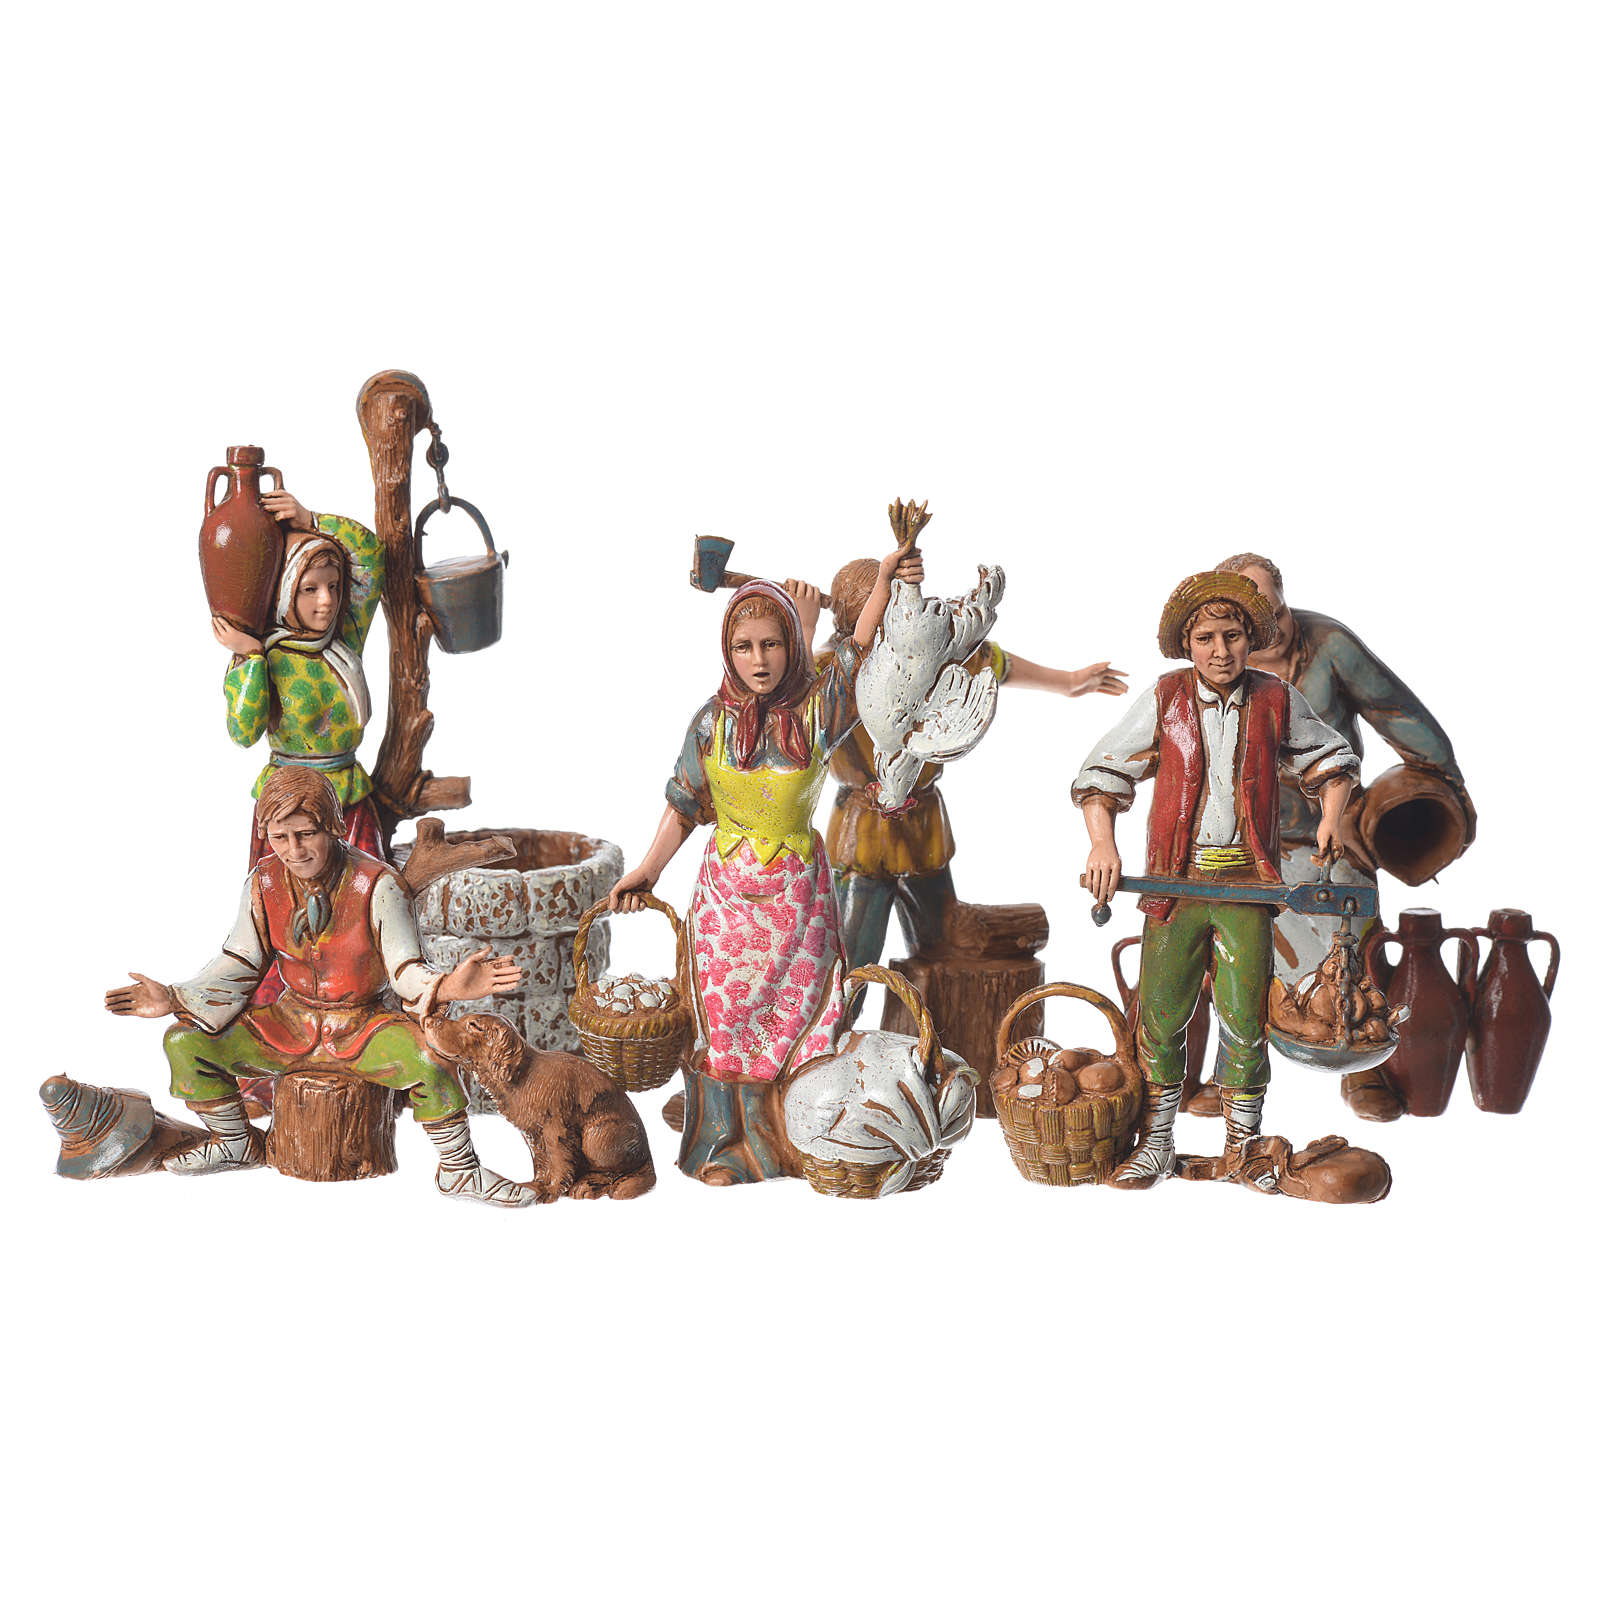 Shepherds 10cm 6 figurines, Moranduzzo Nativity Scene 4